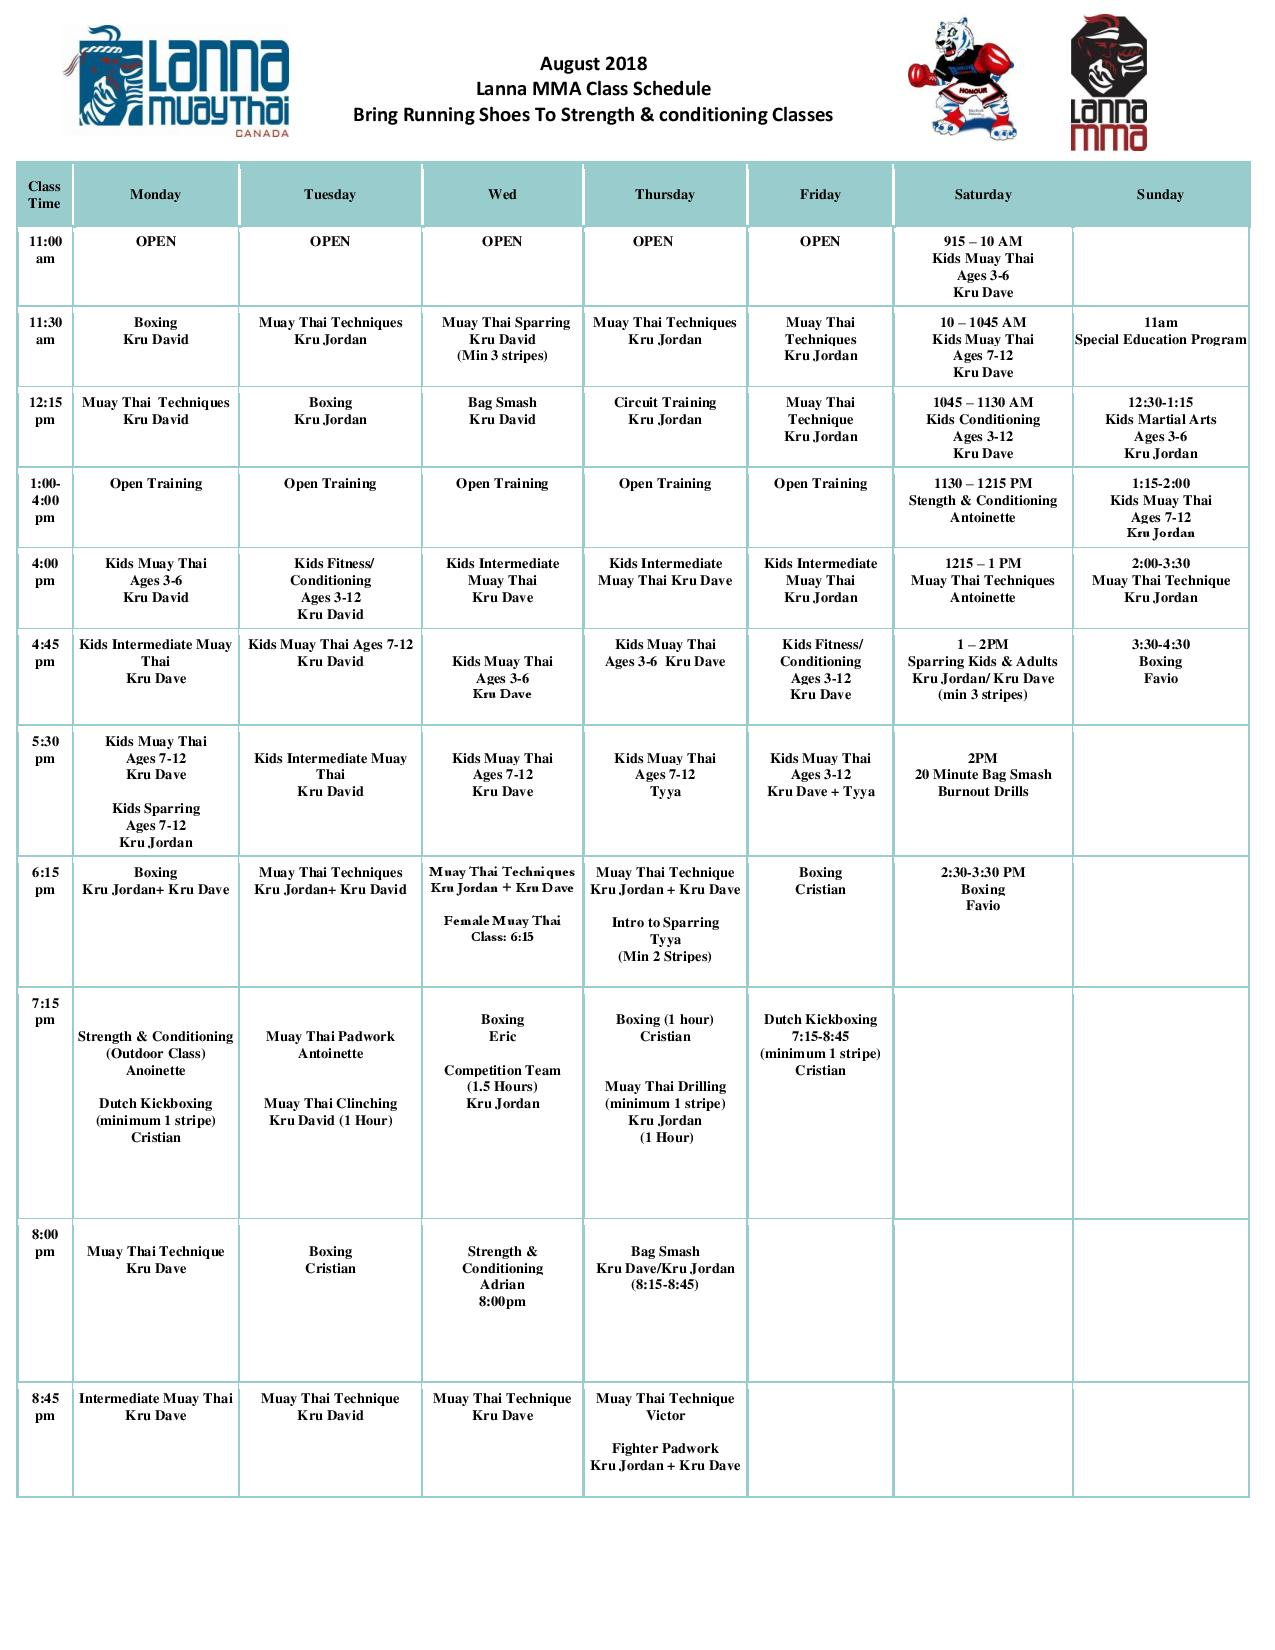 Daily class time table for boxing, muay thai, kickboxing, and kids martial arts classes for Lanna MMA located at 3625 Weston Rd